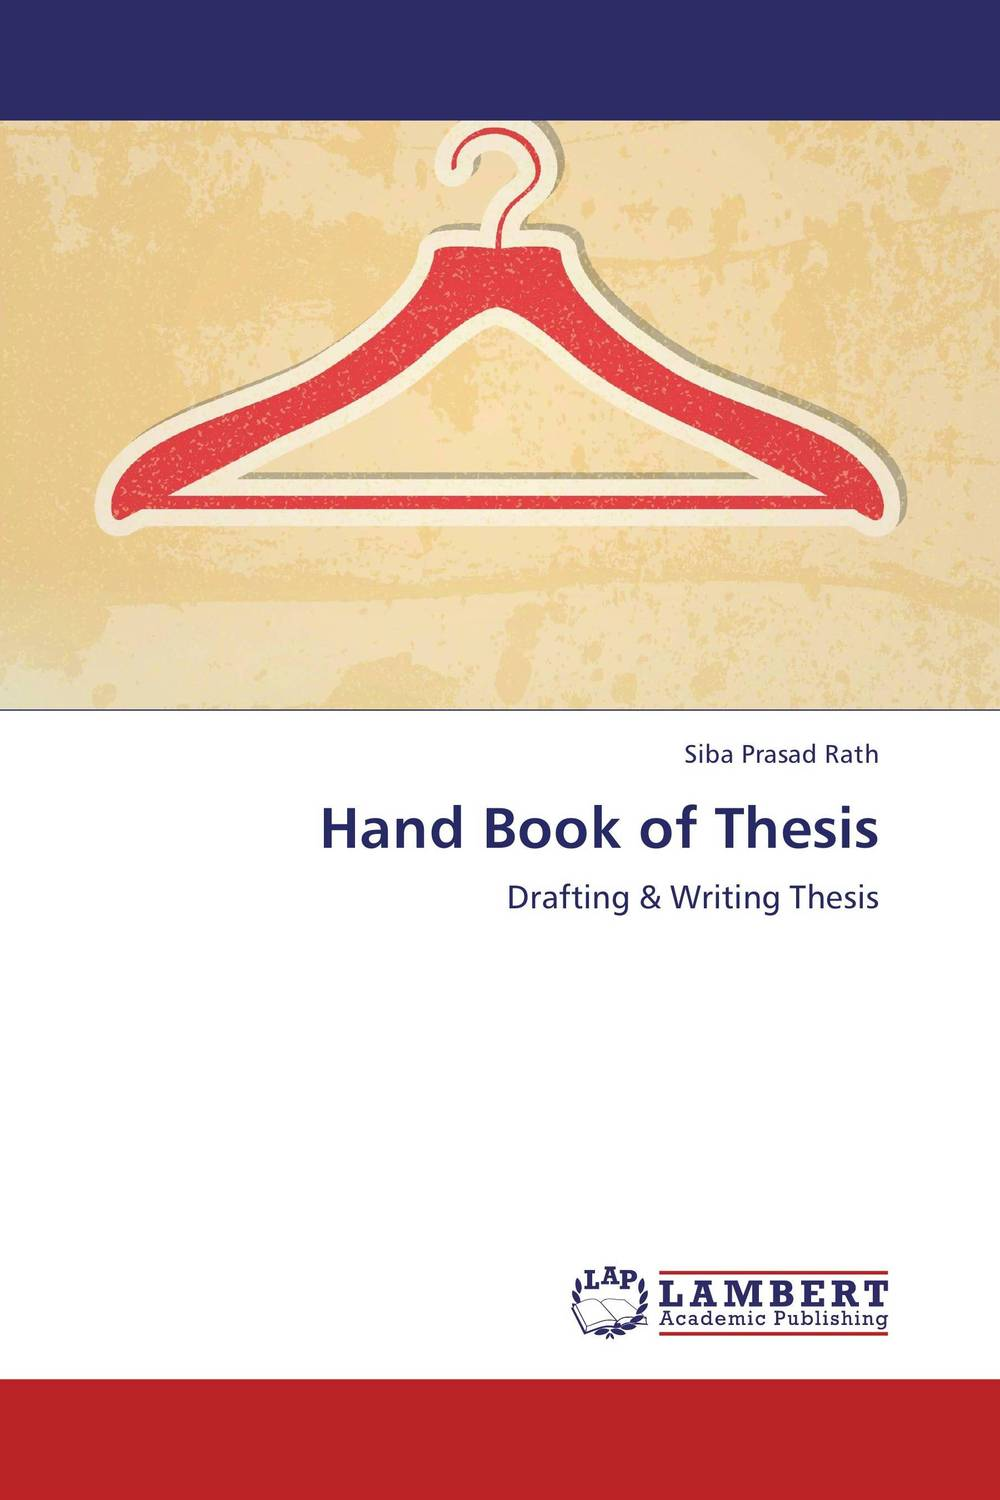 Hand Book of Thesis